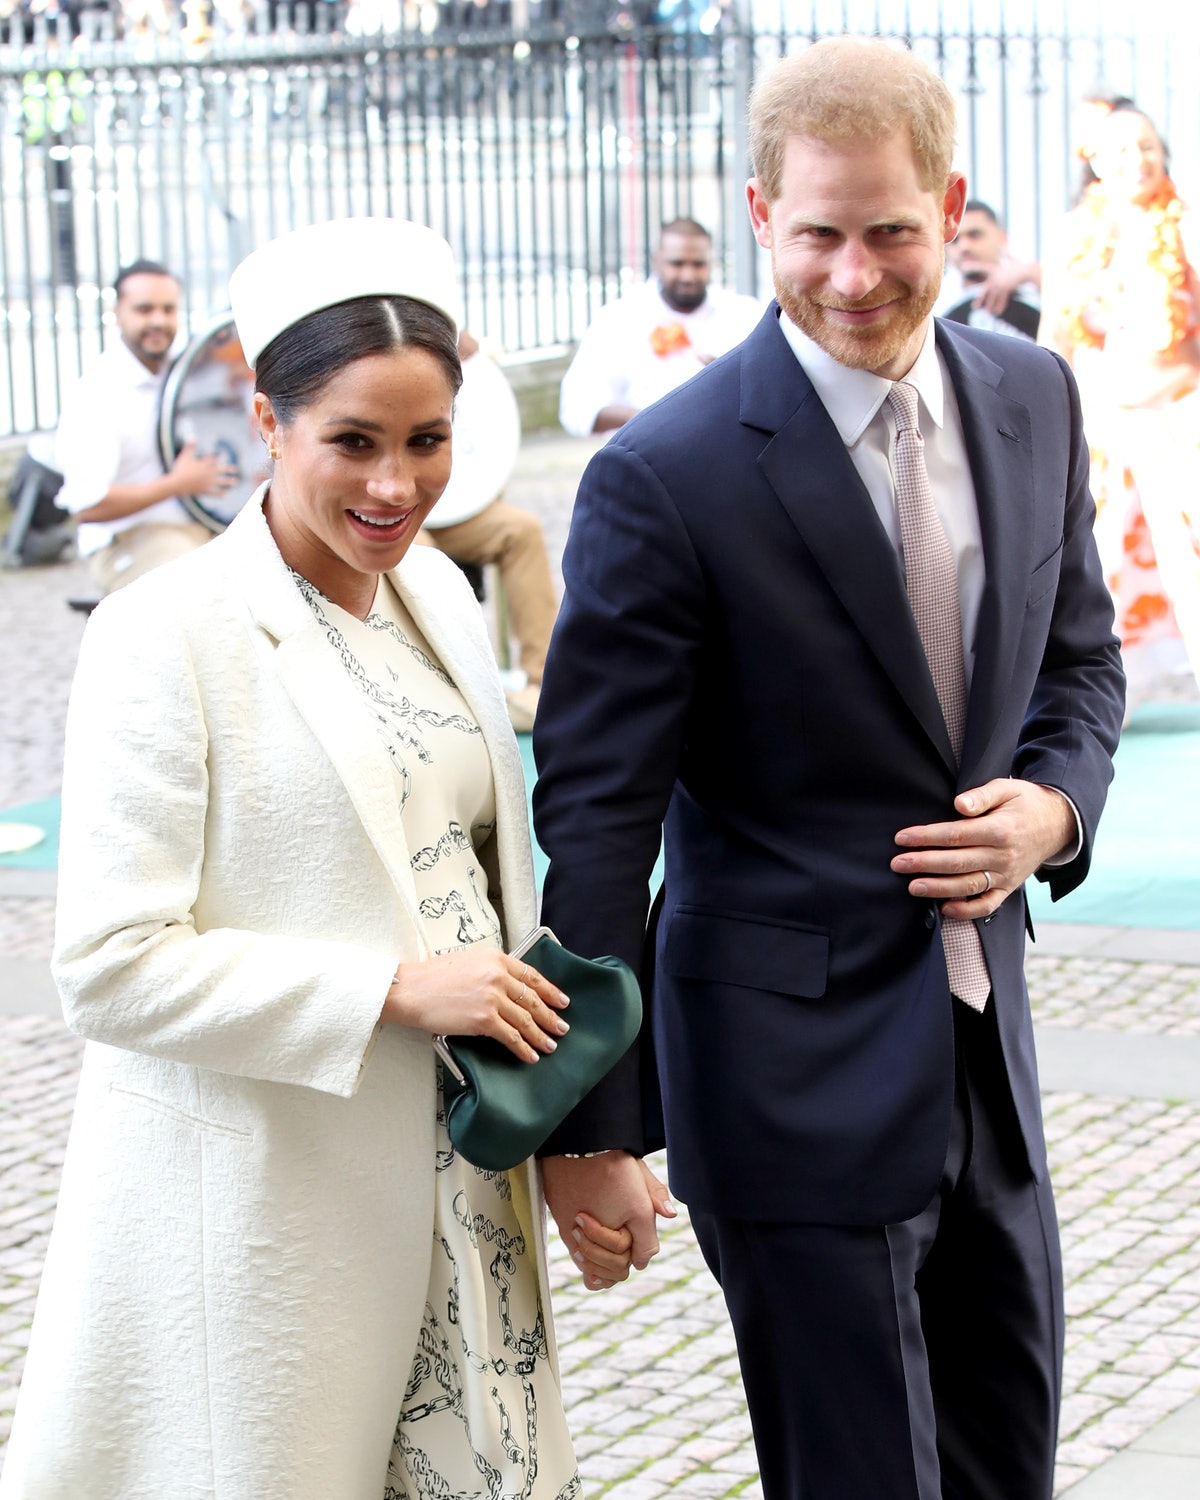 Why Are Meghan & Harry Moving Out Of The Palace? The Reported Reason Isn't Dramatic At All